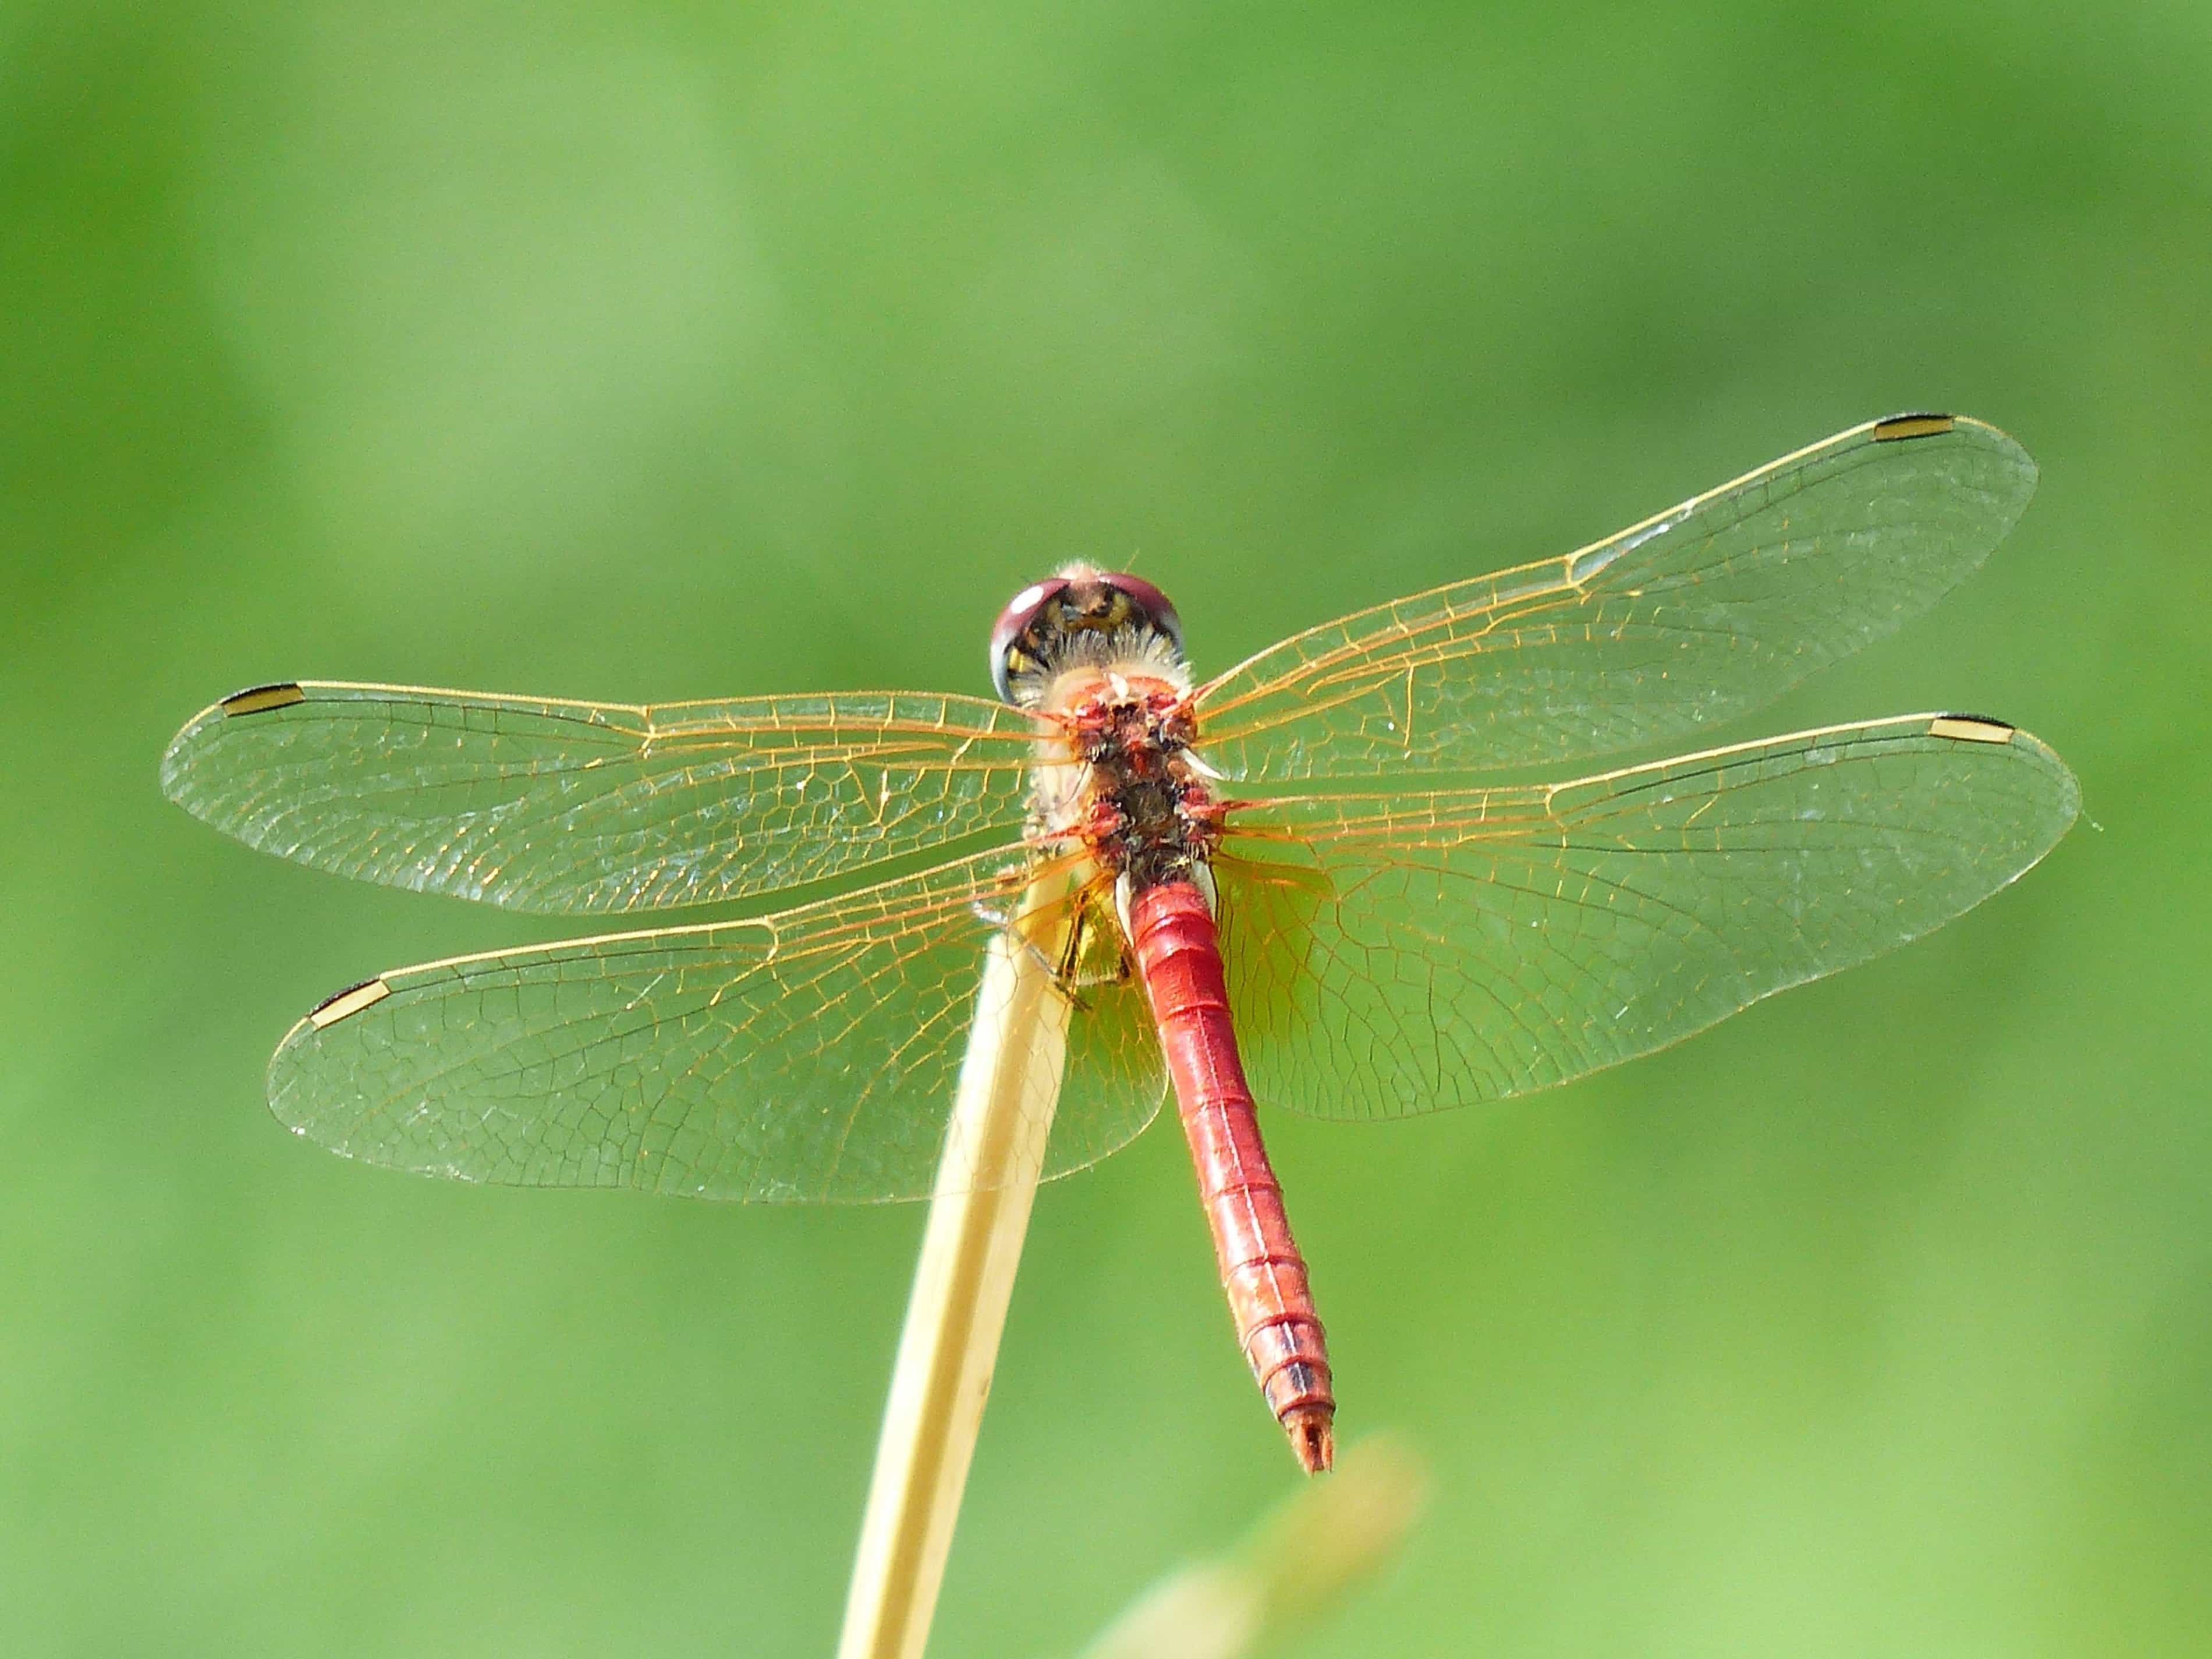 free picture animal insect dragonfly nature arthropod invertebrate